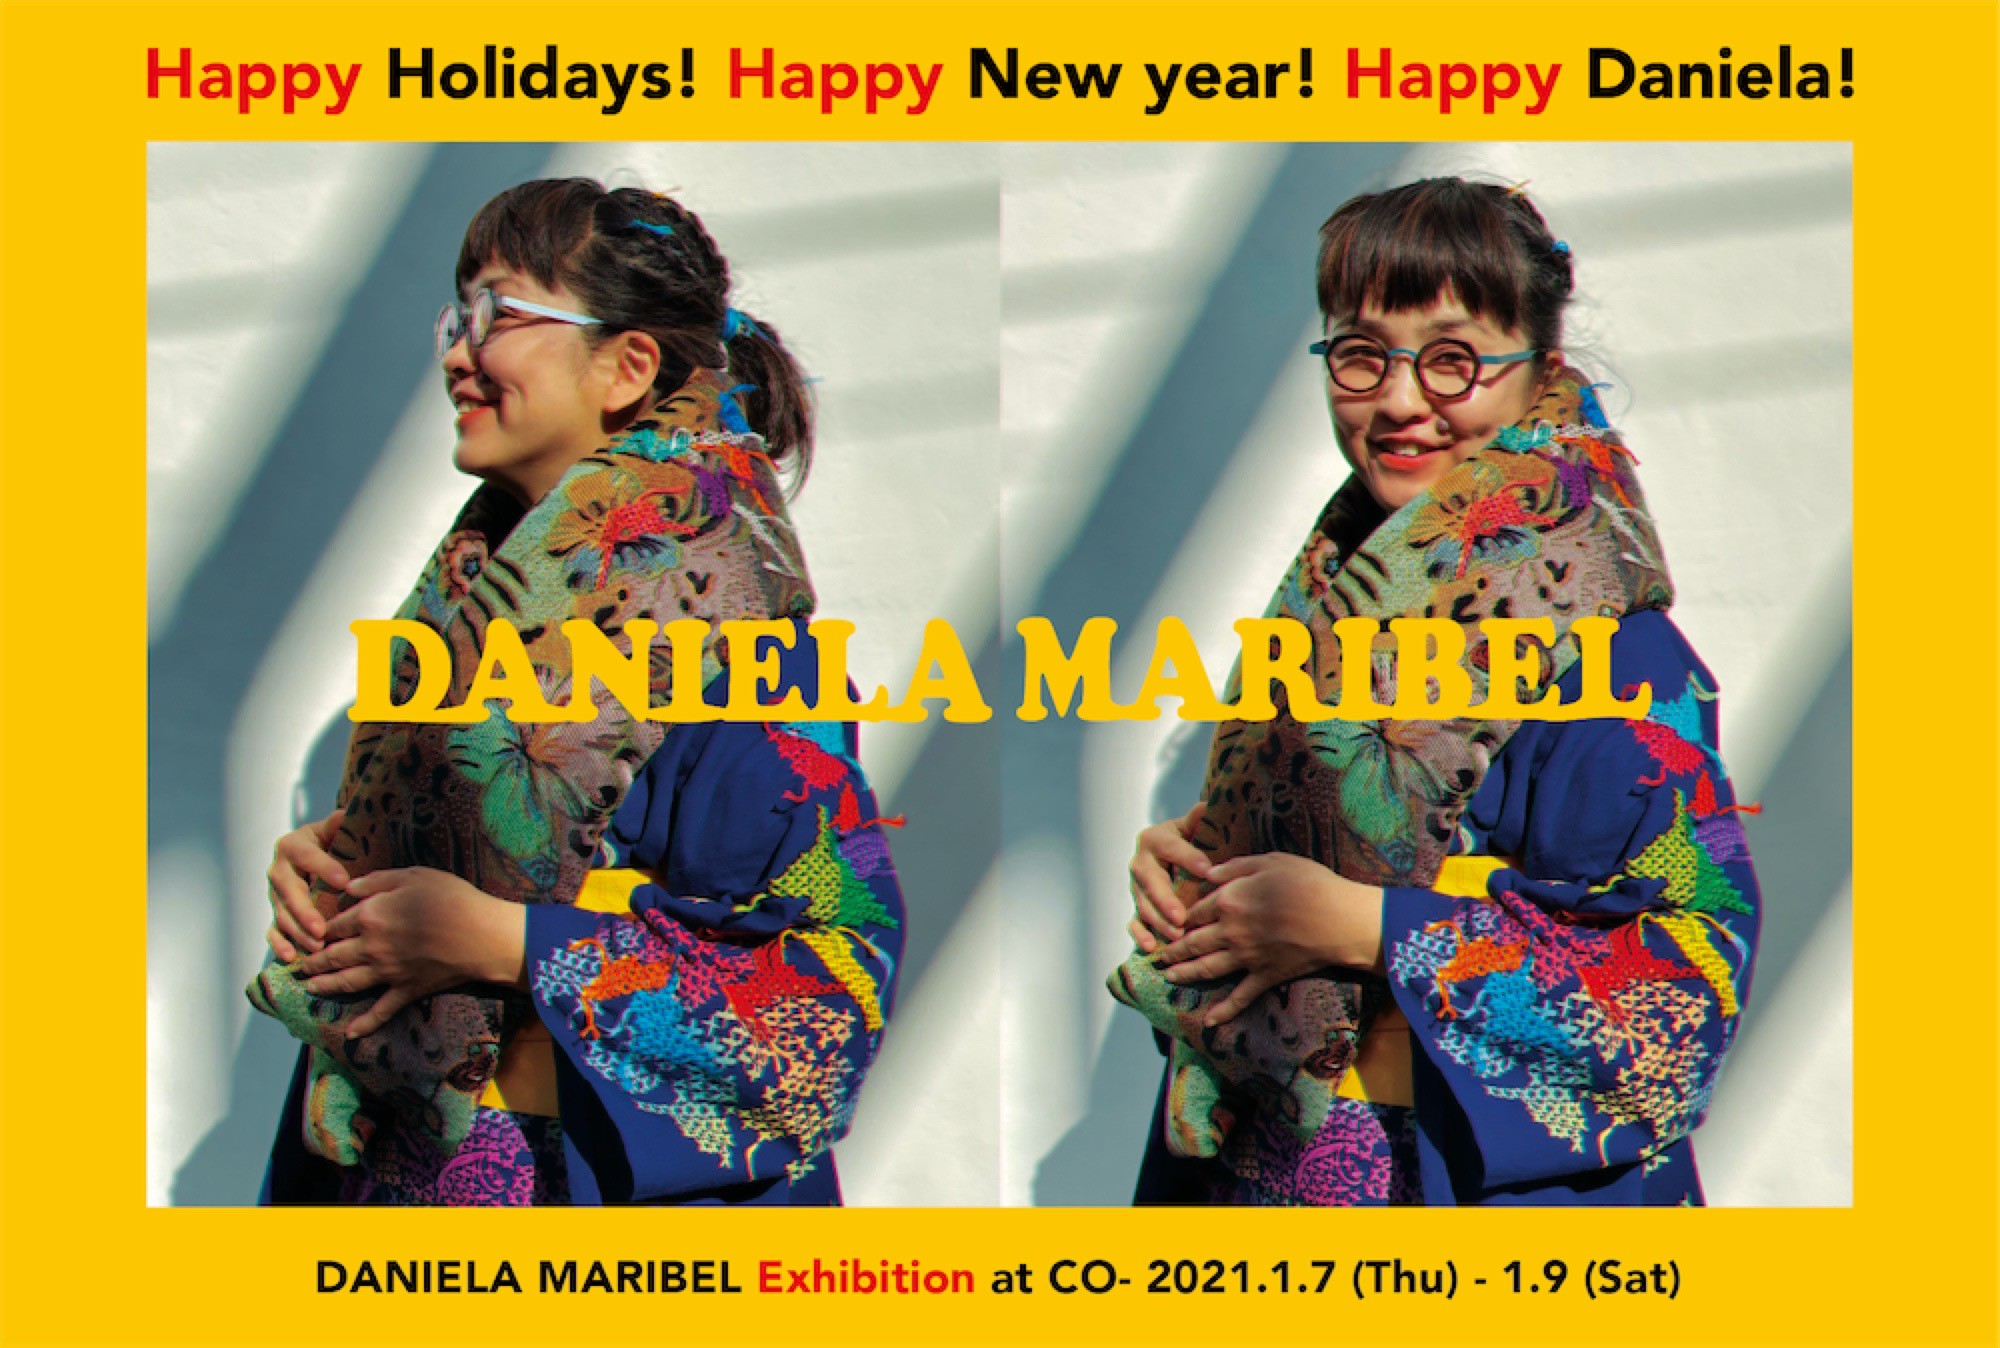 Happy Holidays! Happy New year! Happy Daniela!